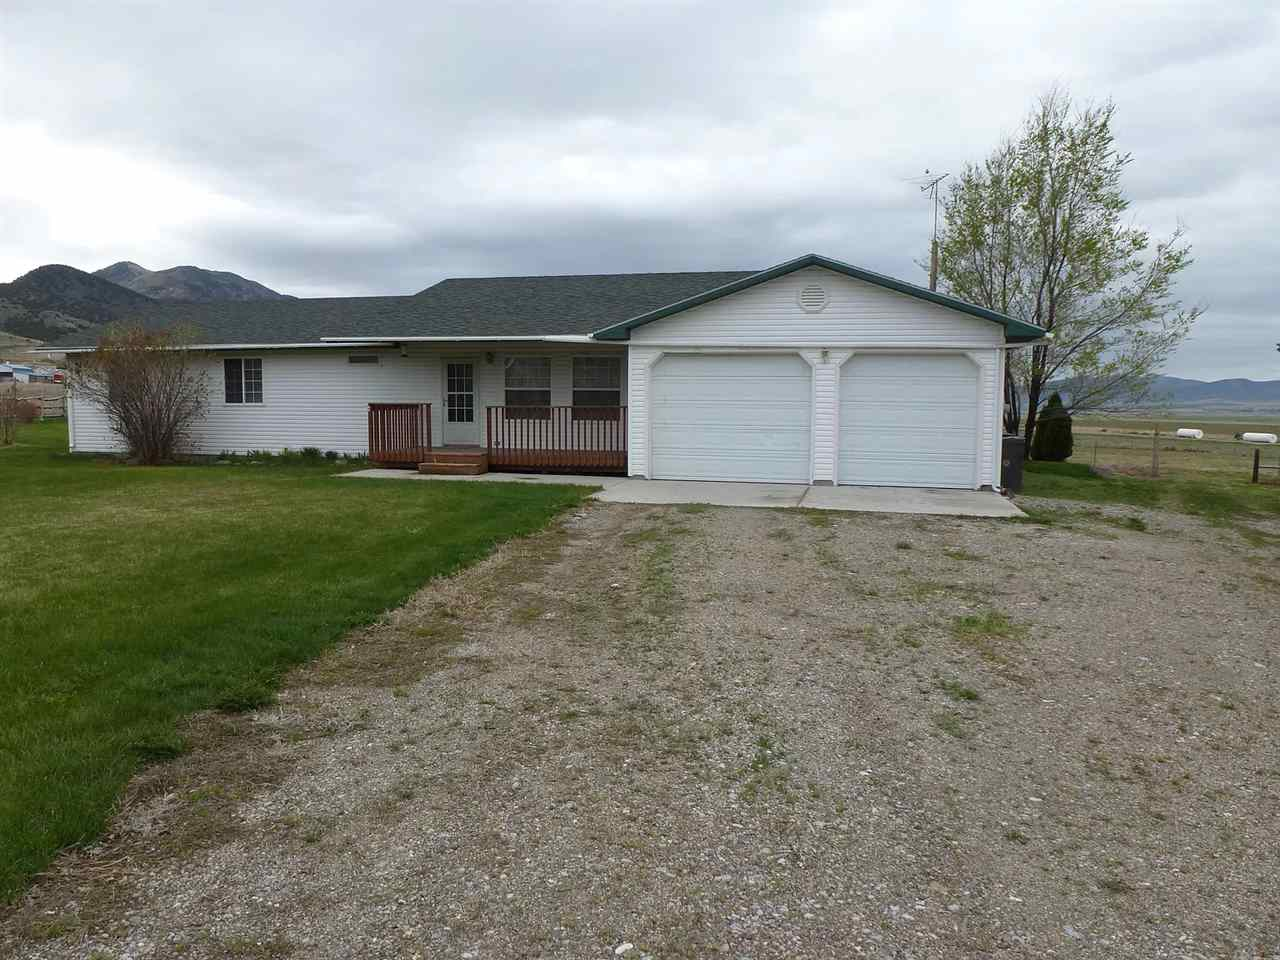 1600 E Woodruff Lane Property Photo - Malad City, ID real estate listing